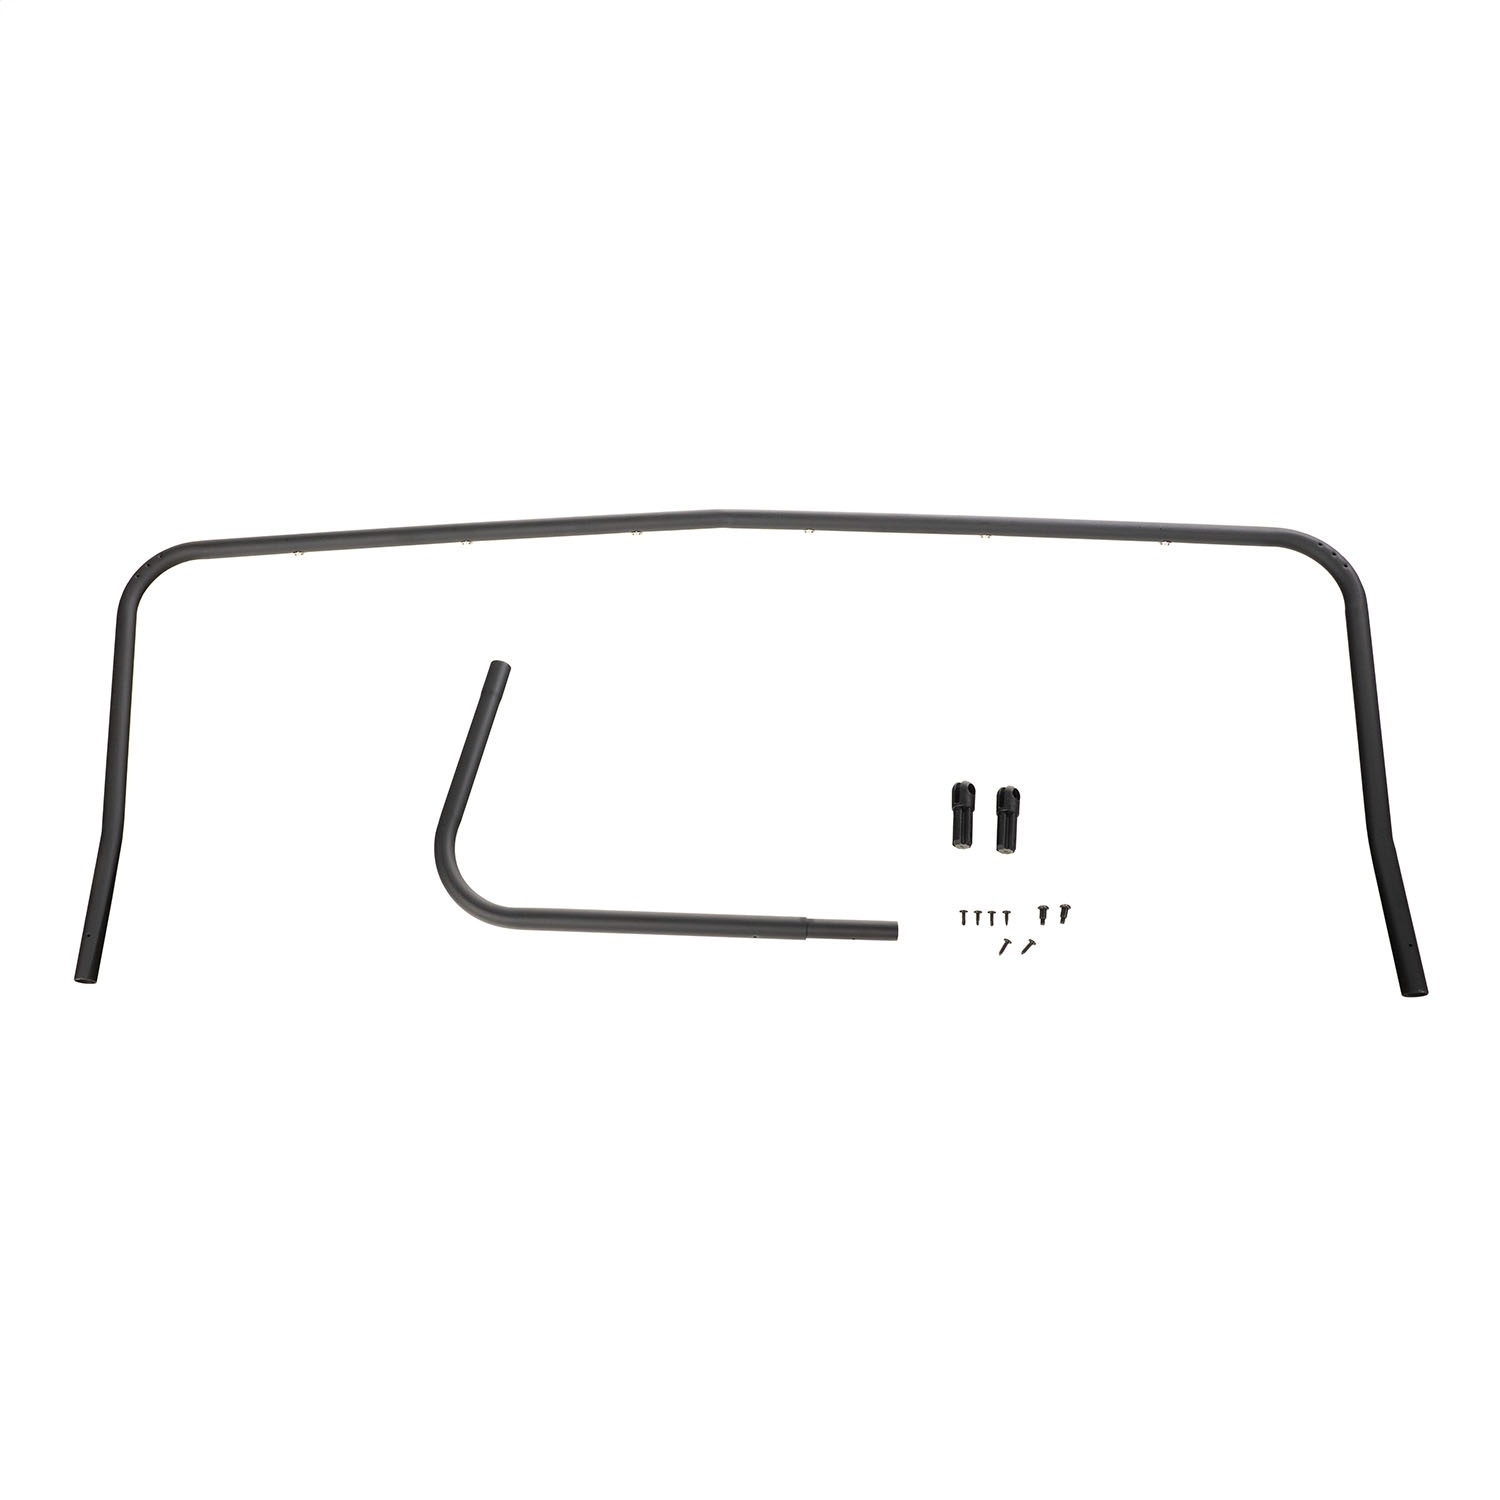 With Hardware 97-06 Jeep Wrangler TJ Soft Top Omix-ADA 13510.85 Front Cross Bow Set